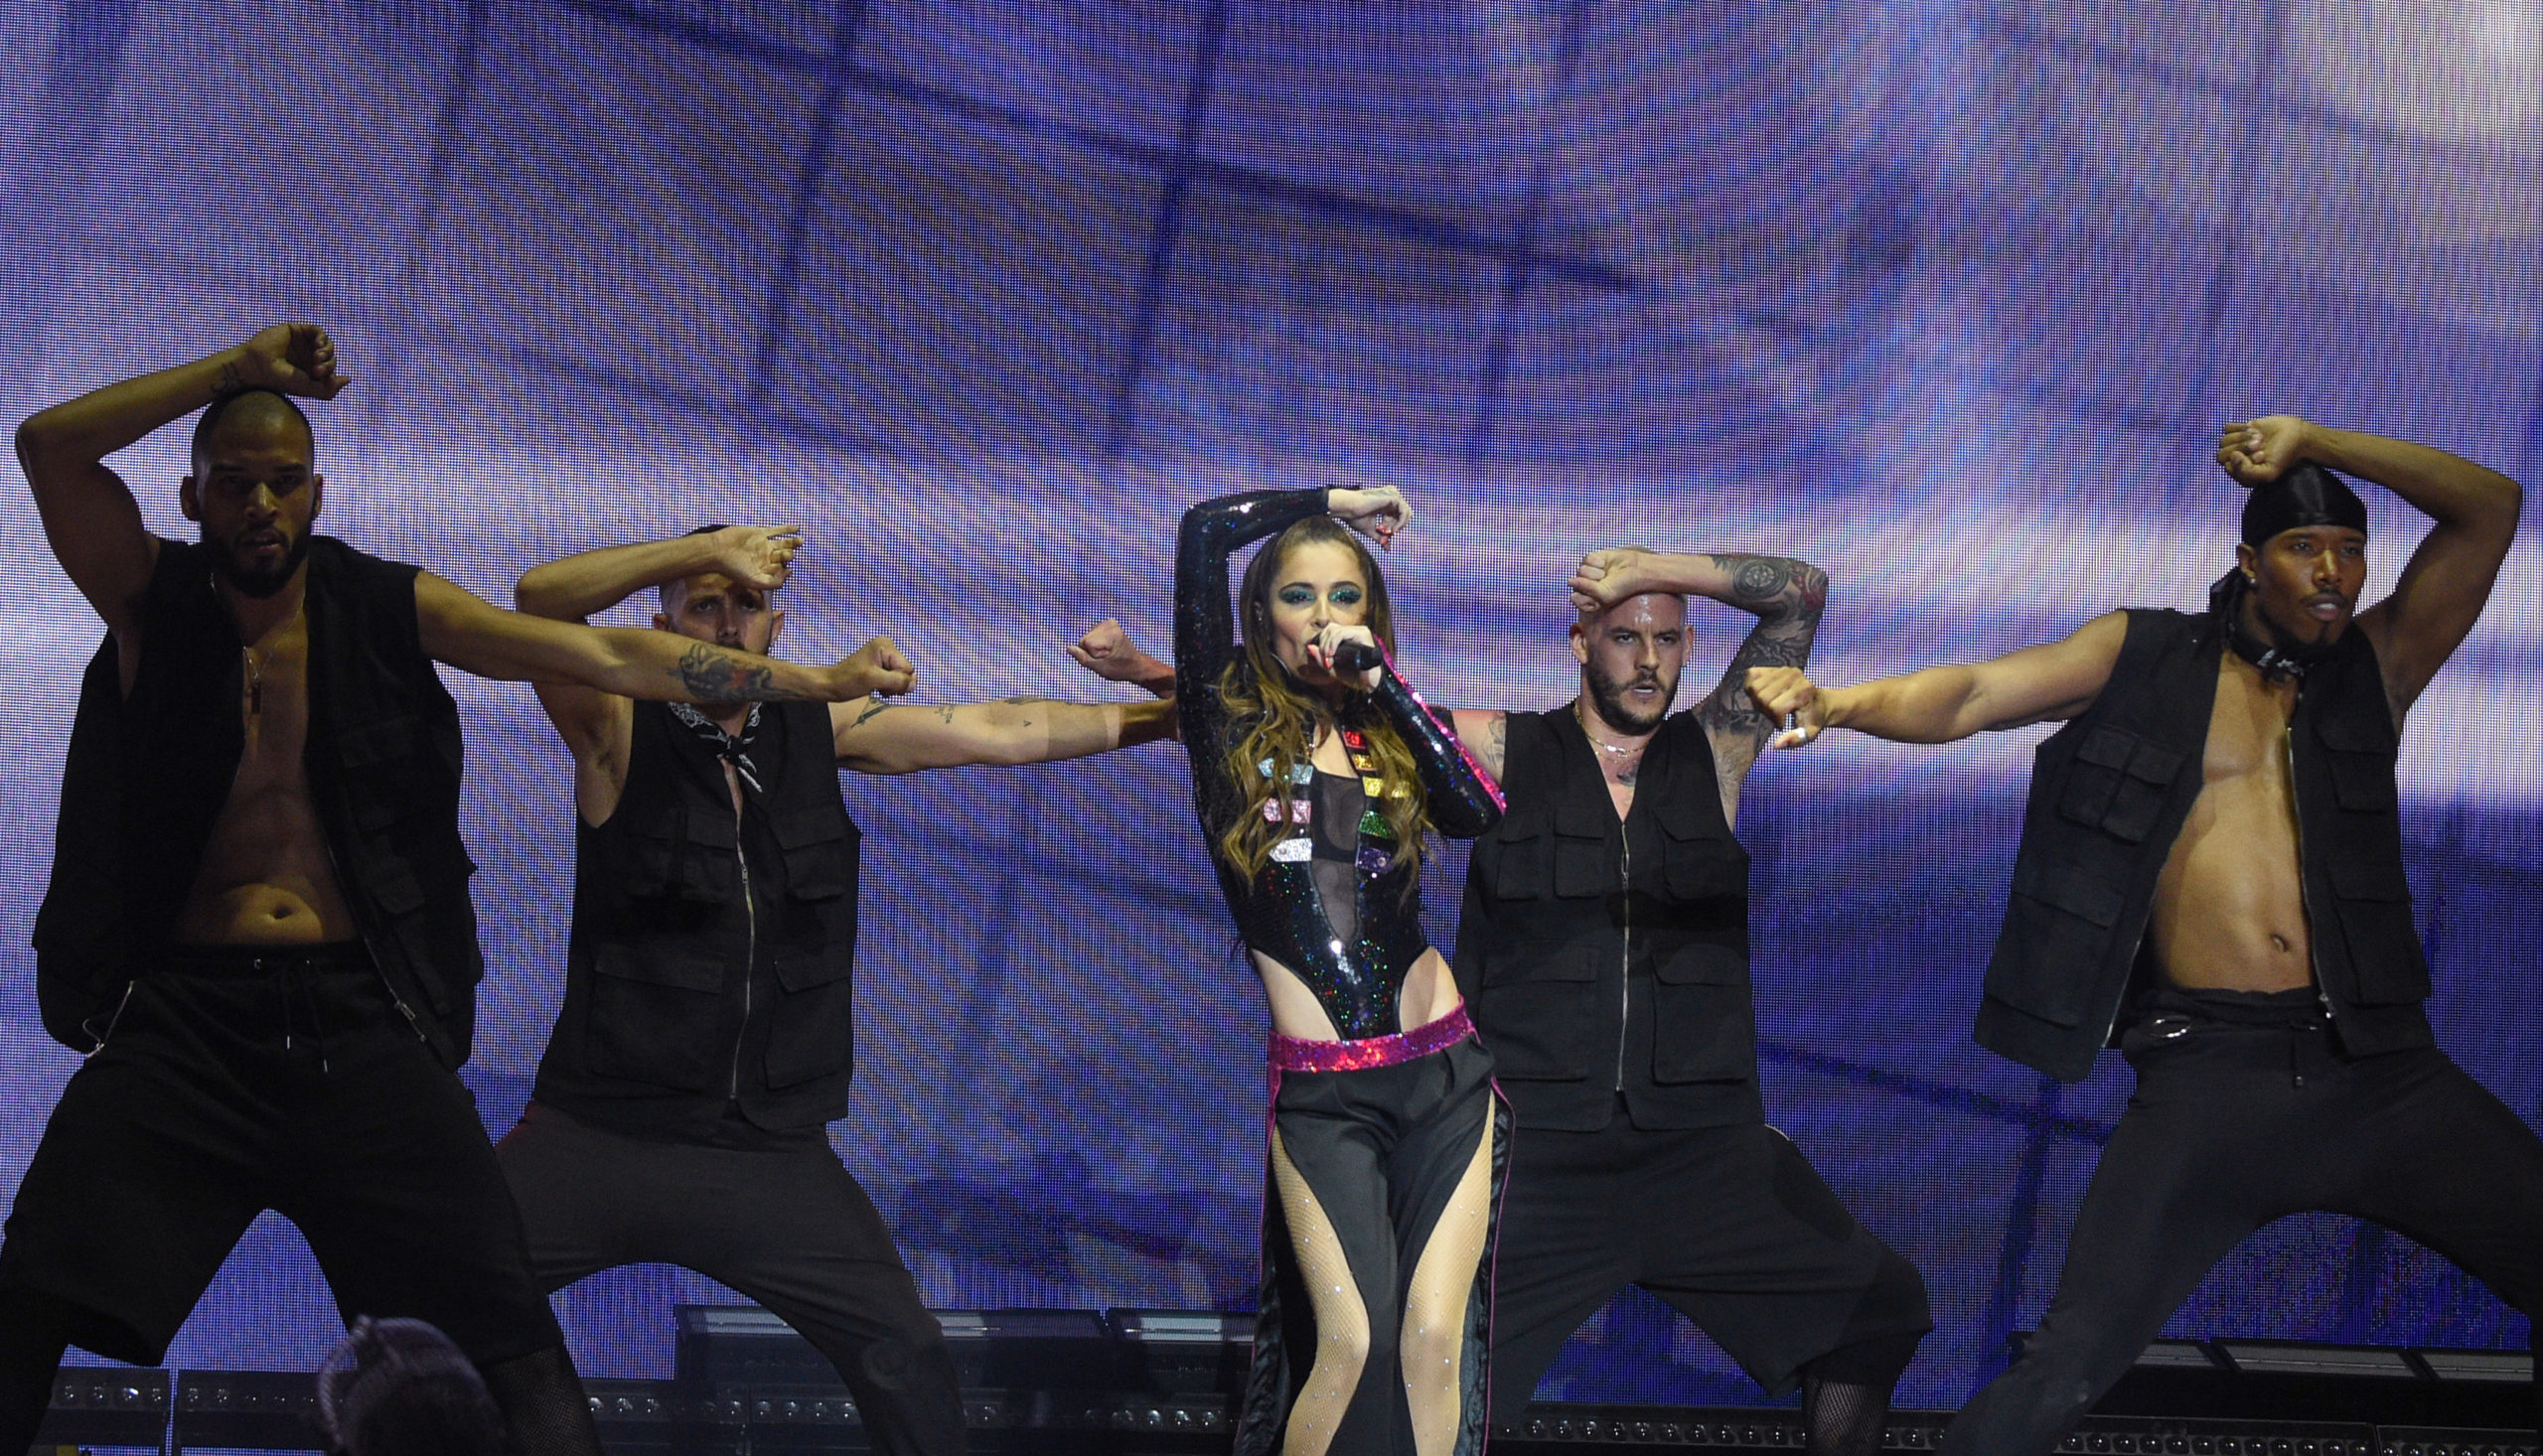 Mighty Hoopla: Cheryl performs on stage during Manchester Pride Live 2019 at the Mayfield Depot on August 25, 2019 in Manchester, England.